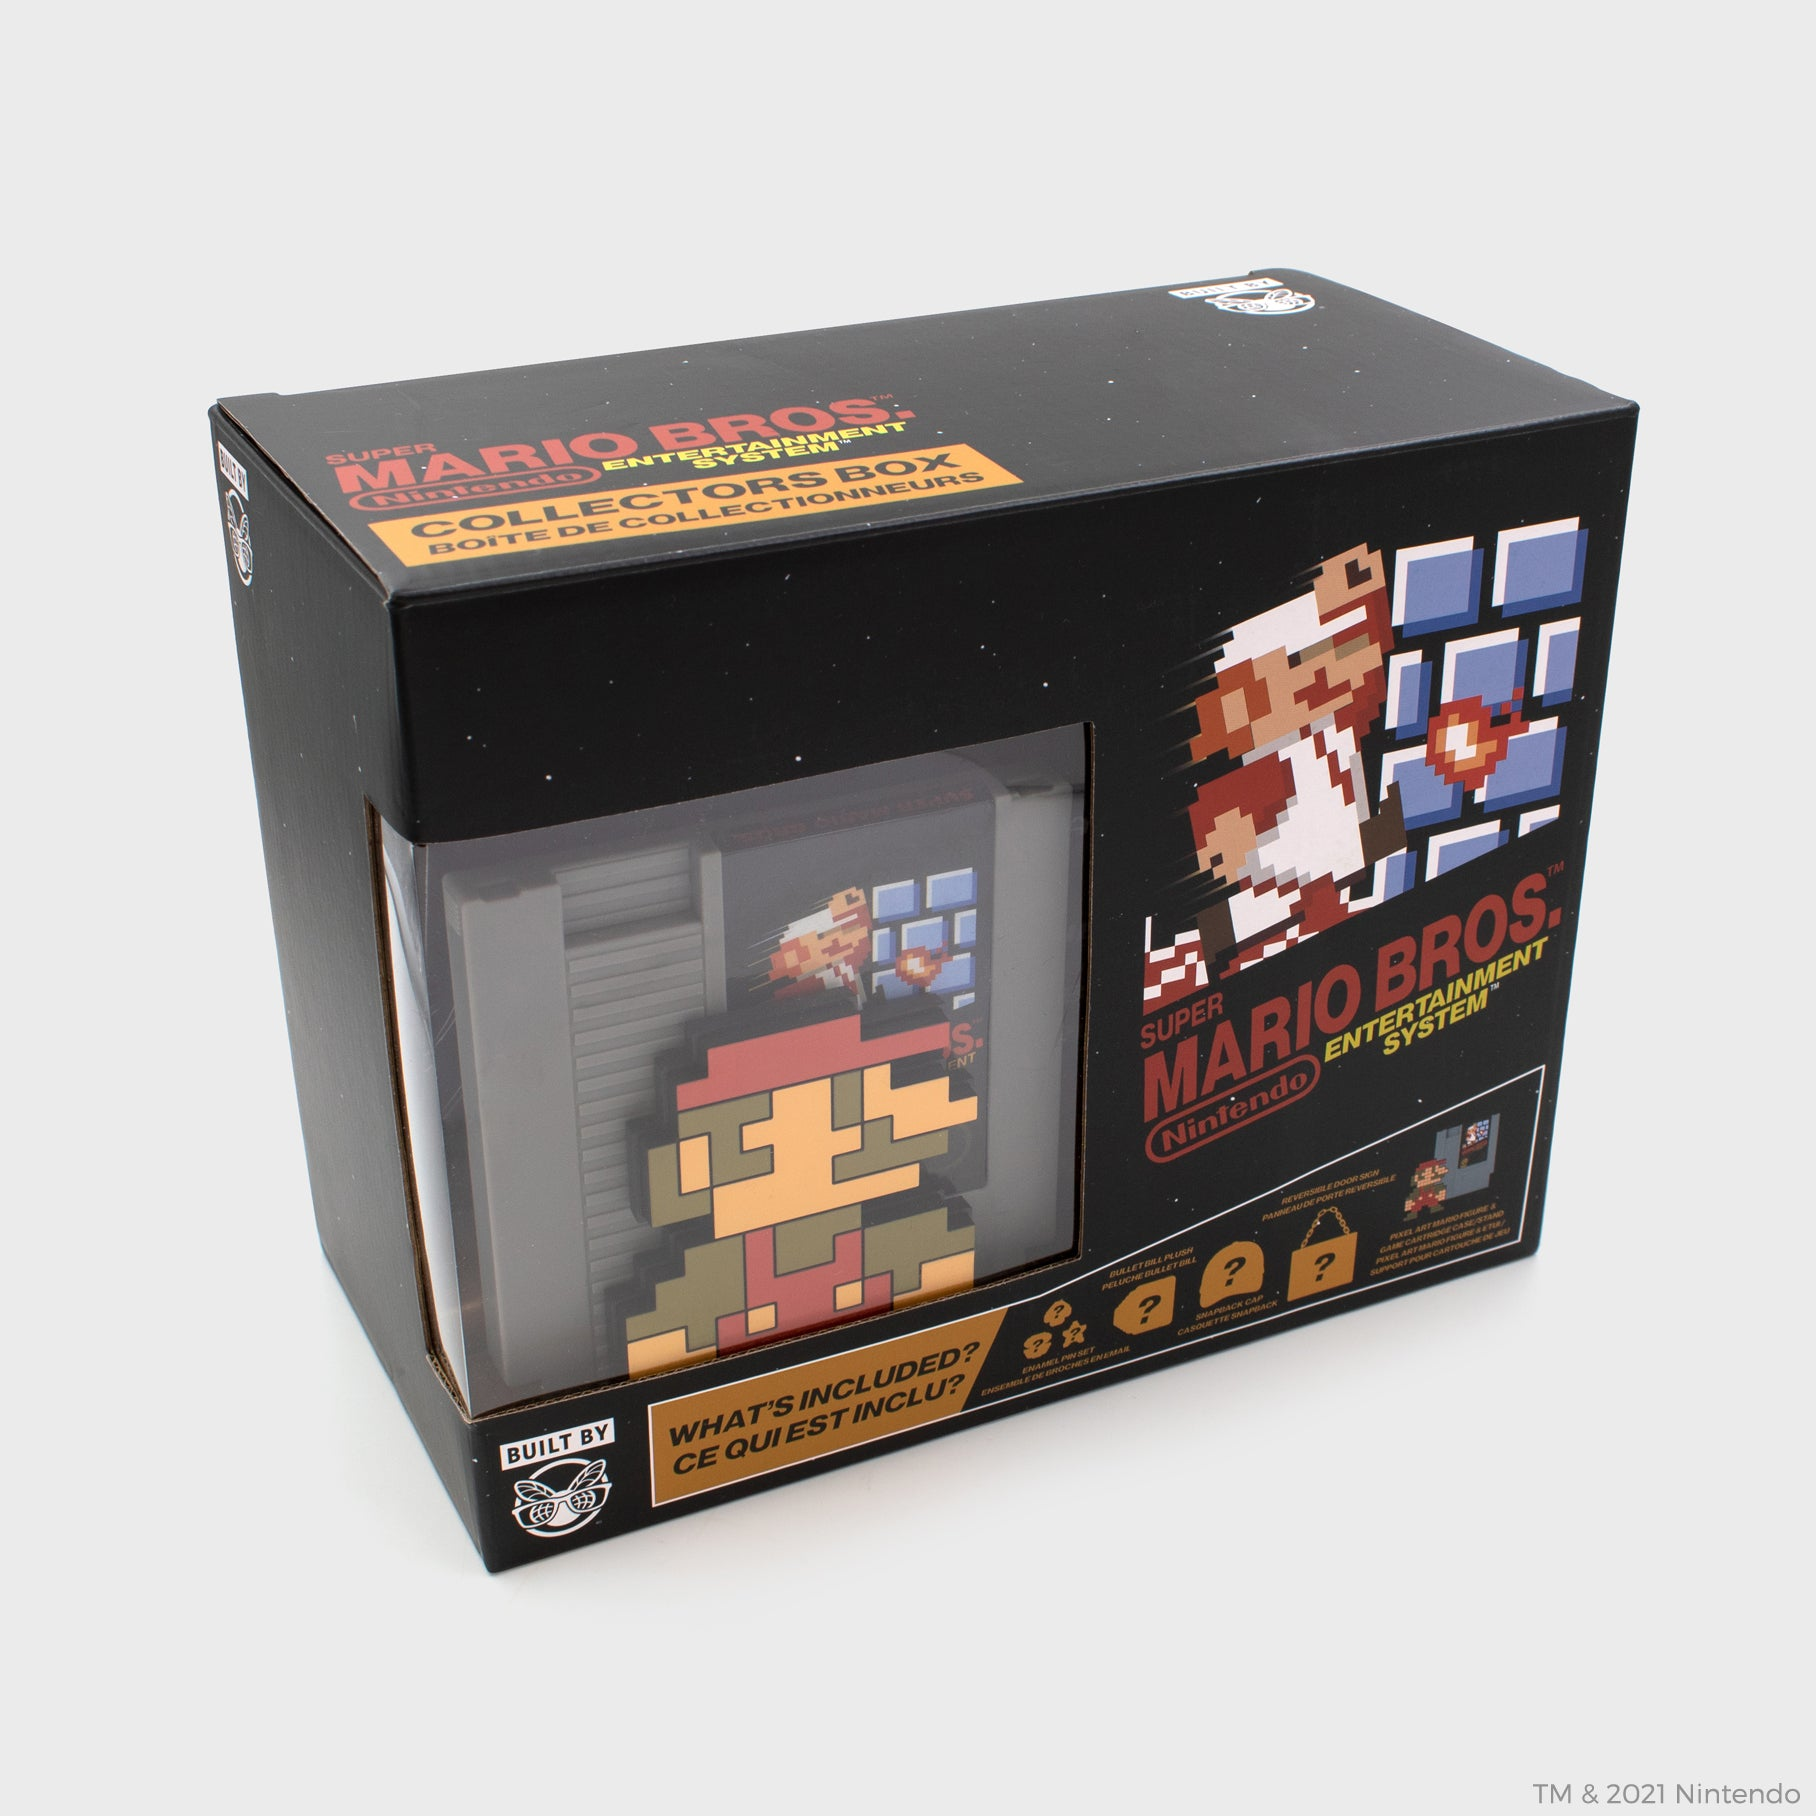 nintendo super mario bros. nes nintendo entertainment system collector's box 8-bit classic retro video games gaming culturefly